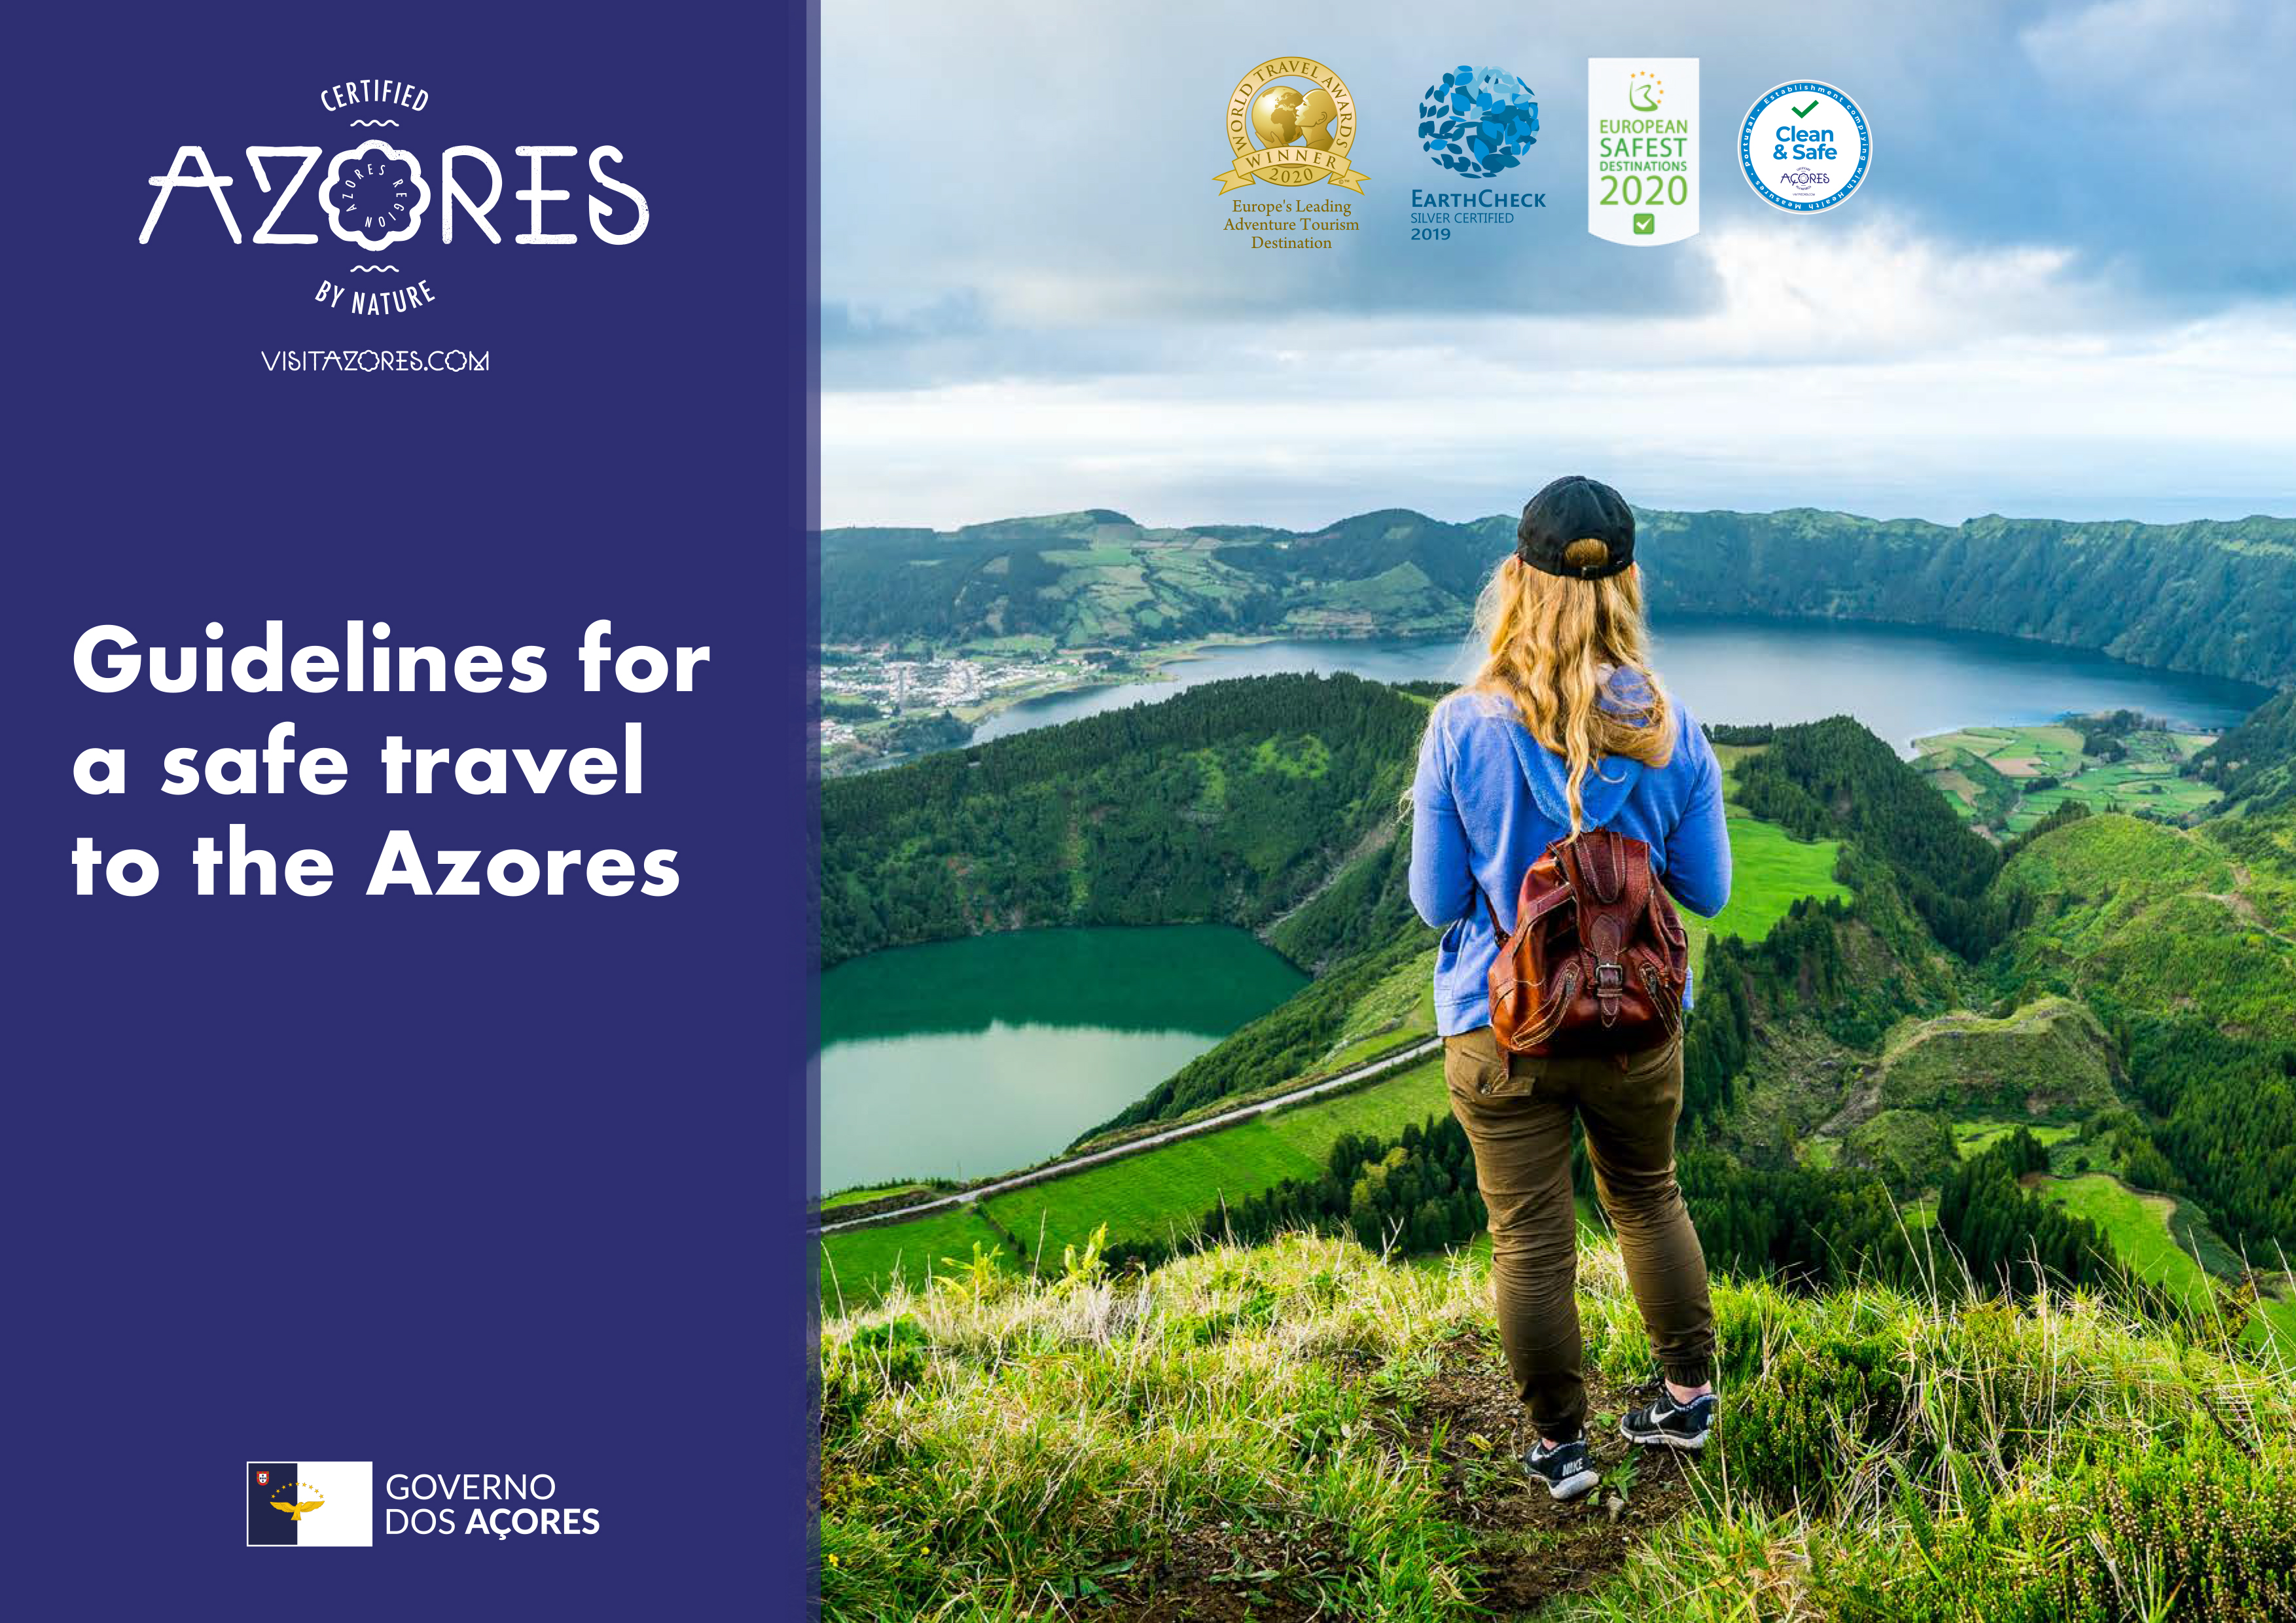 Recommendations for a safe trip to the Azores